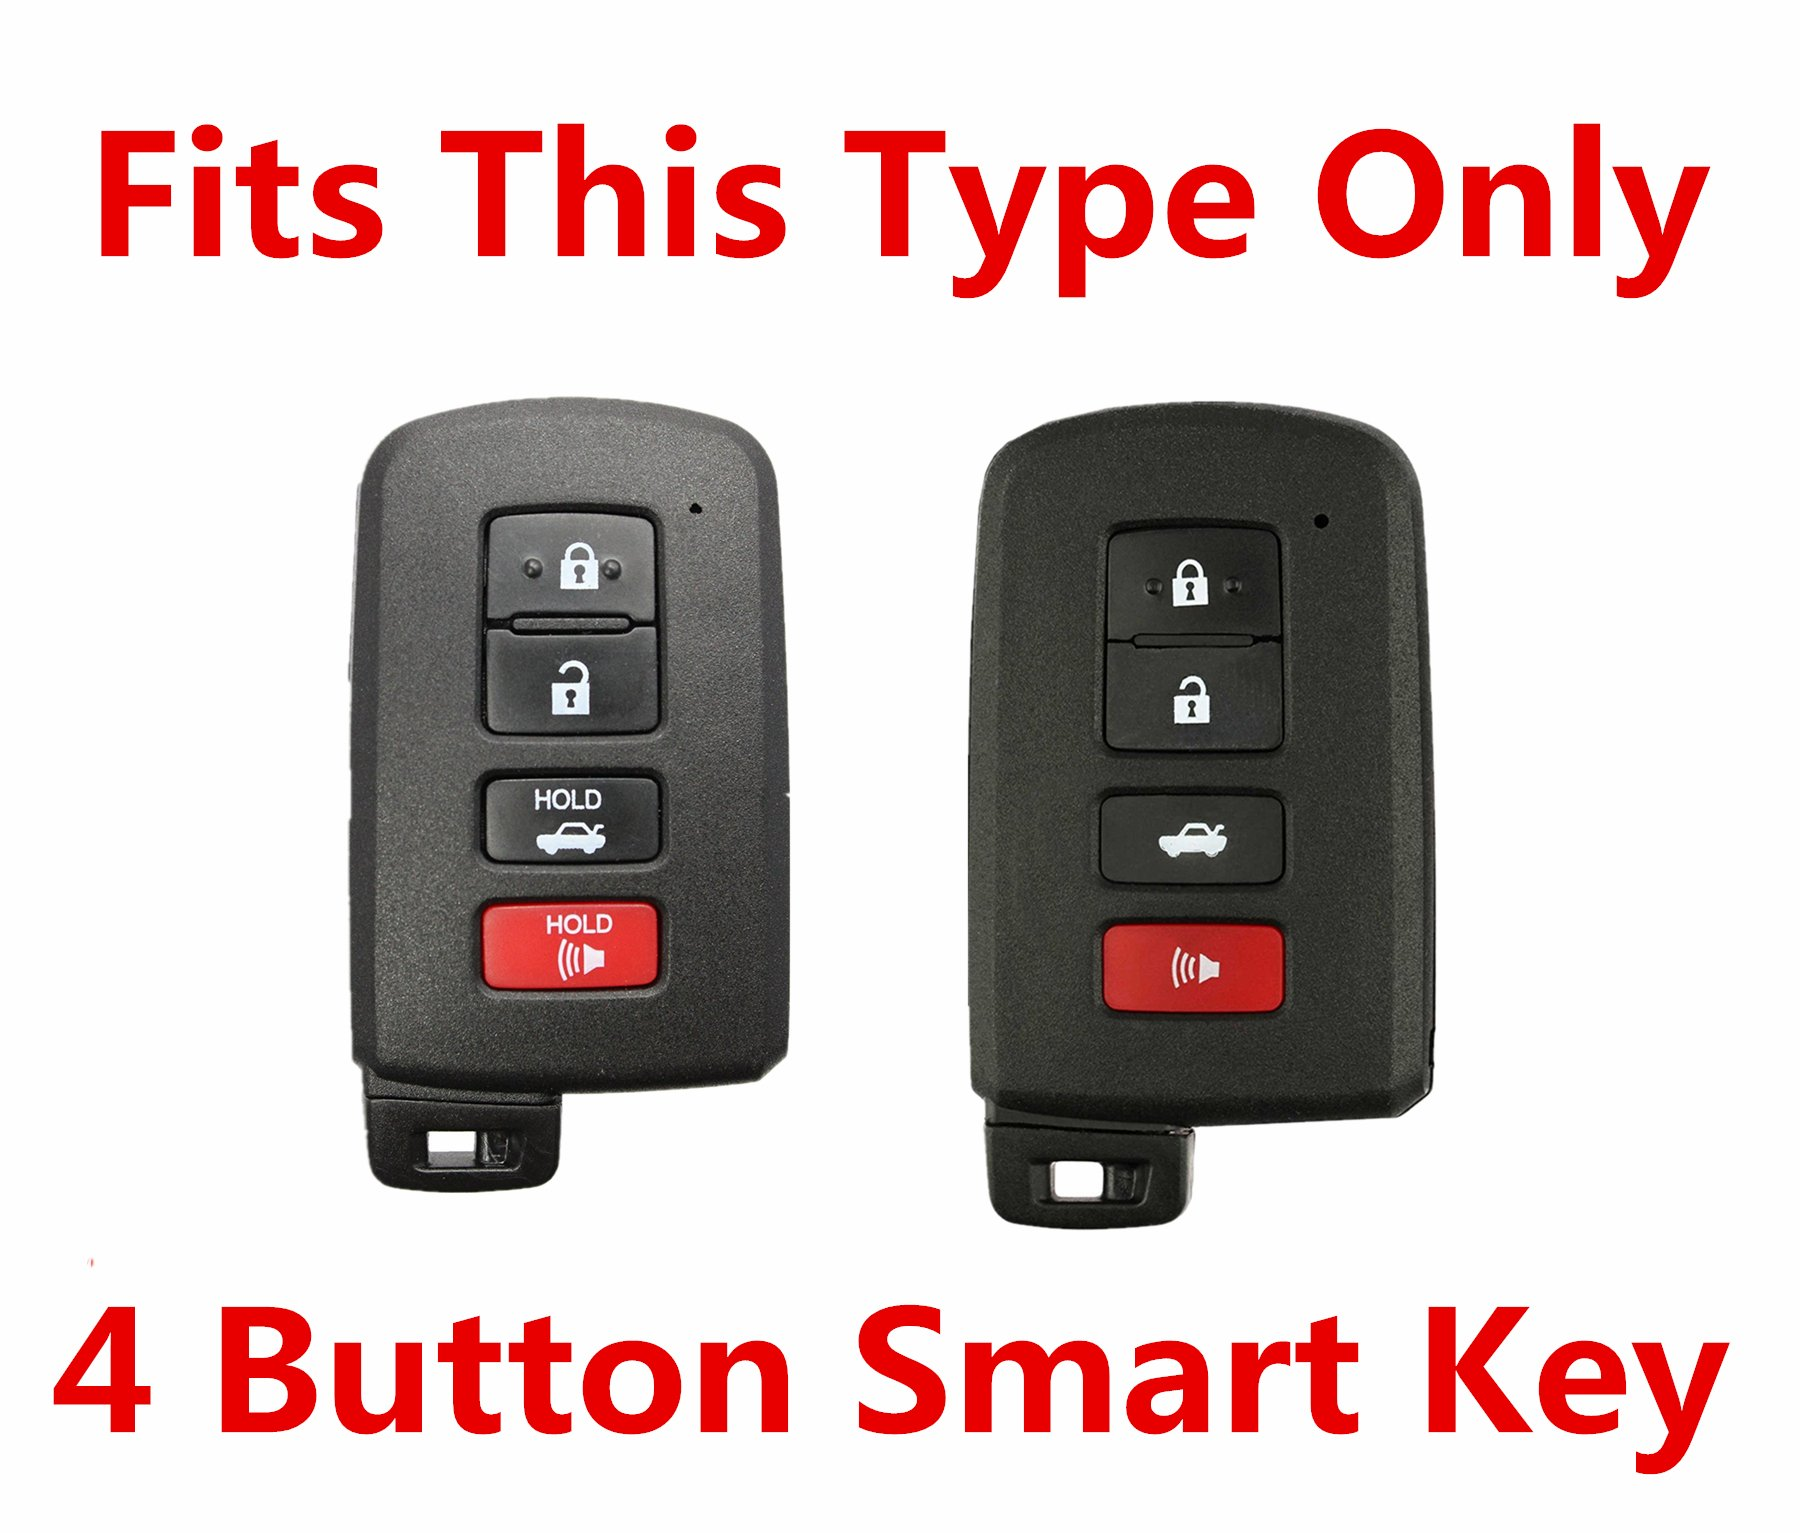 KaTur 433MHz 3 Buttons Auto Car Remote Key Shell Case Cover Replacement with Battery ID46 Chip for Peugeot Citroen Berlingo 4347666891